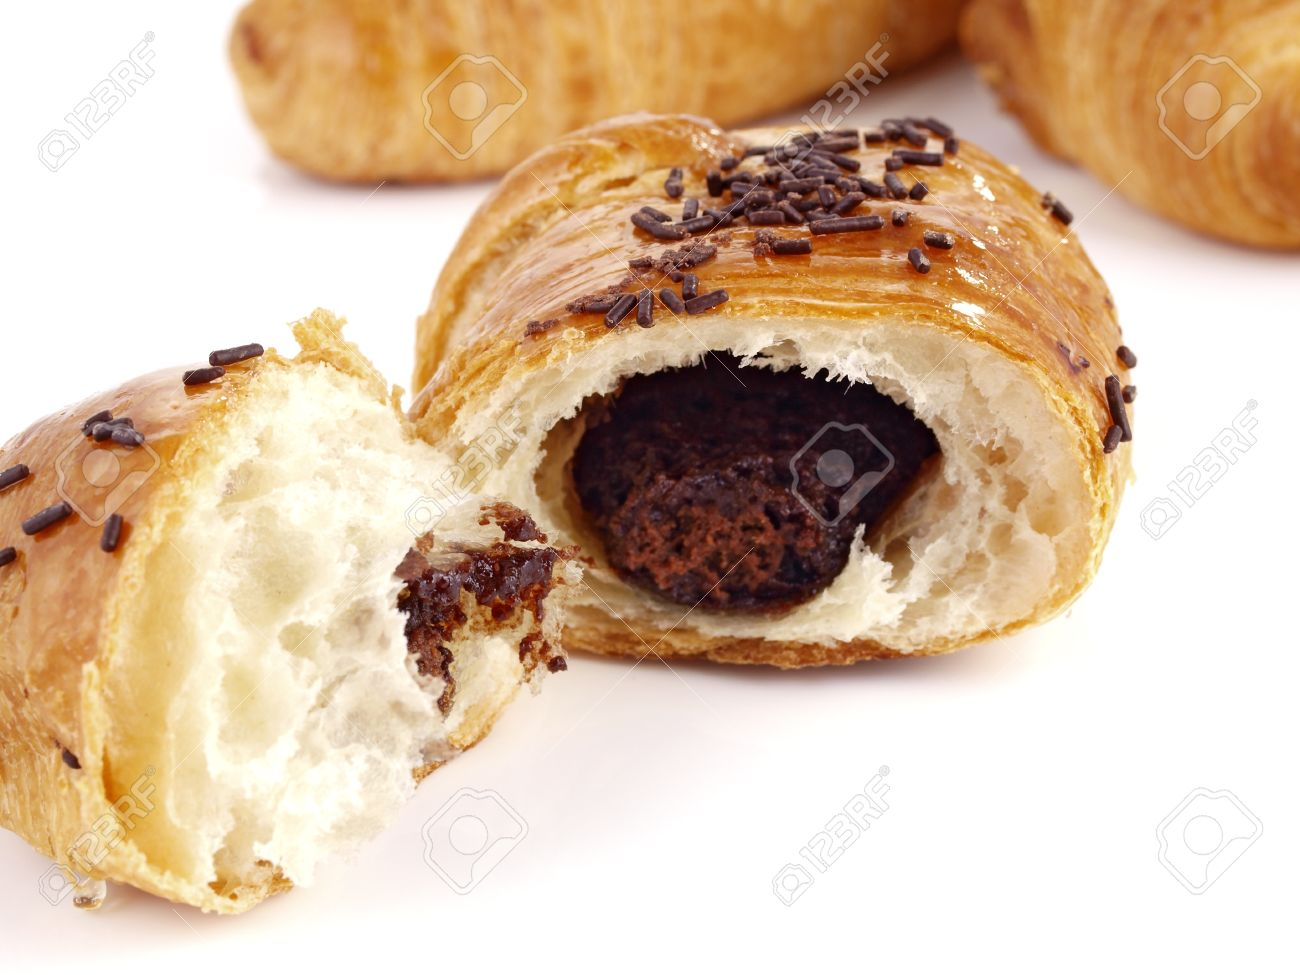 Chocolate Croissant. Tasty & Delicious Croissant Filled With ...